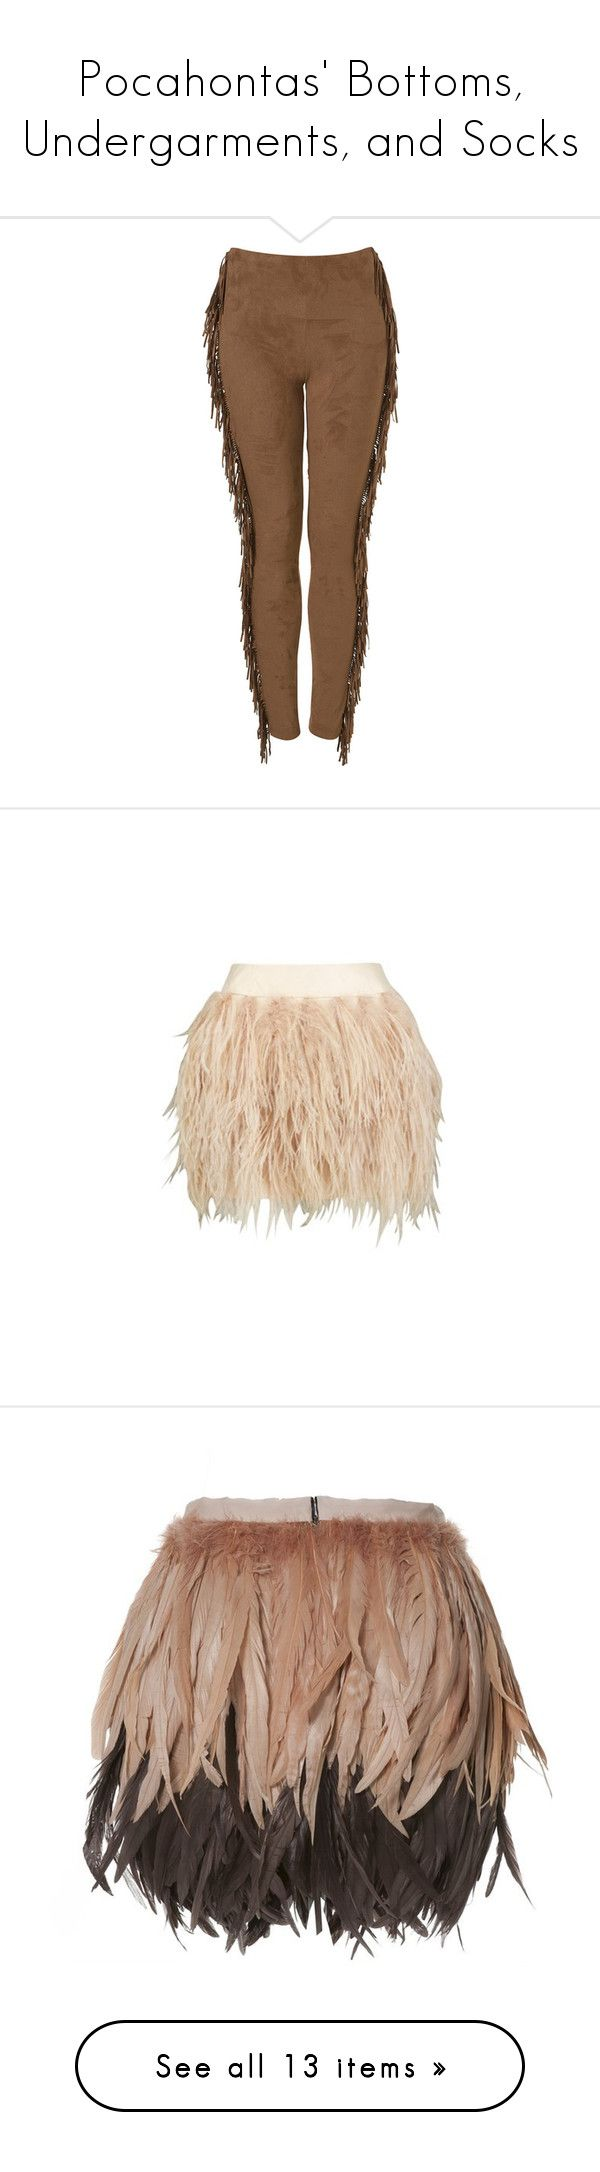 """""""Pocahontas' Bottoms, Undergarments, and Socks"""" by disneydressing ❤ liked on Polyvore featuring pants, leggings, bottoms, jeans, women, brown leggings, fringe pants, brown pants, brown trousers and fringe leggings"""